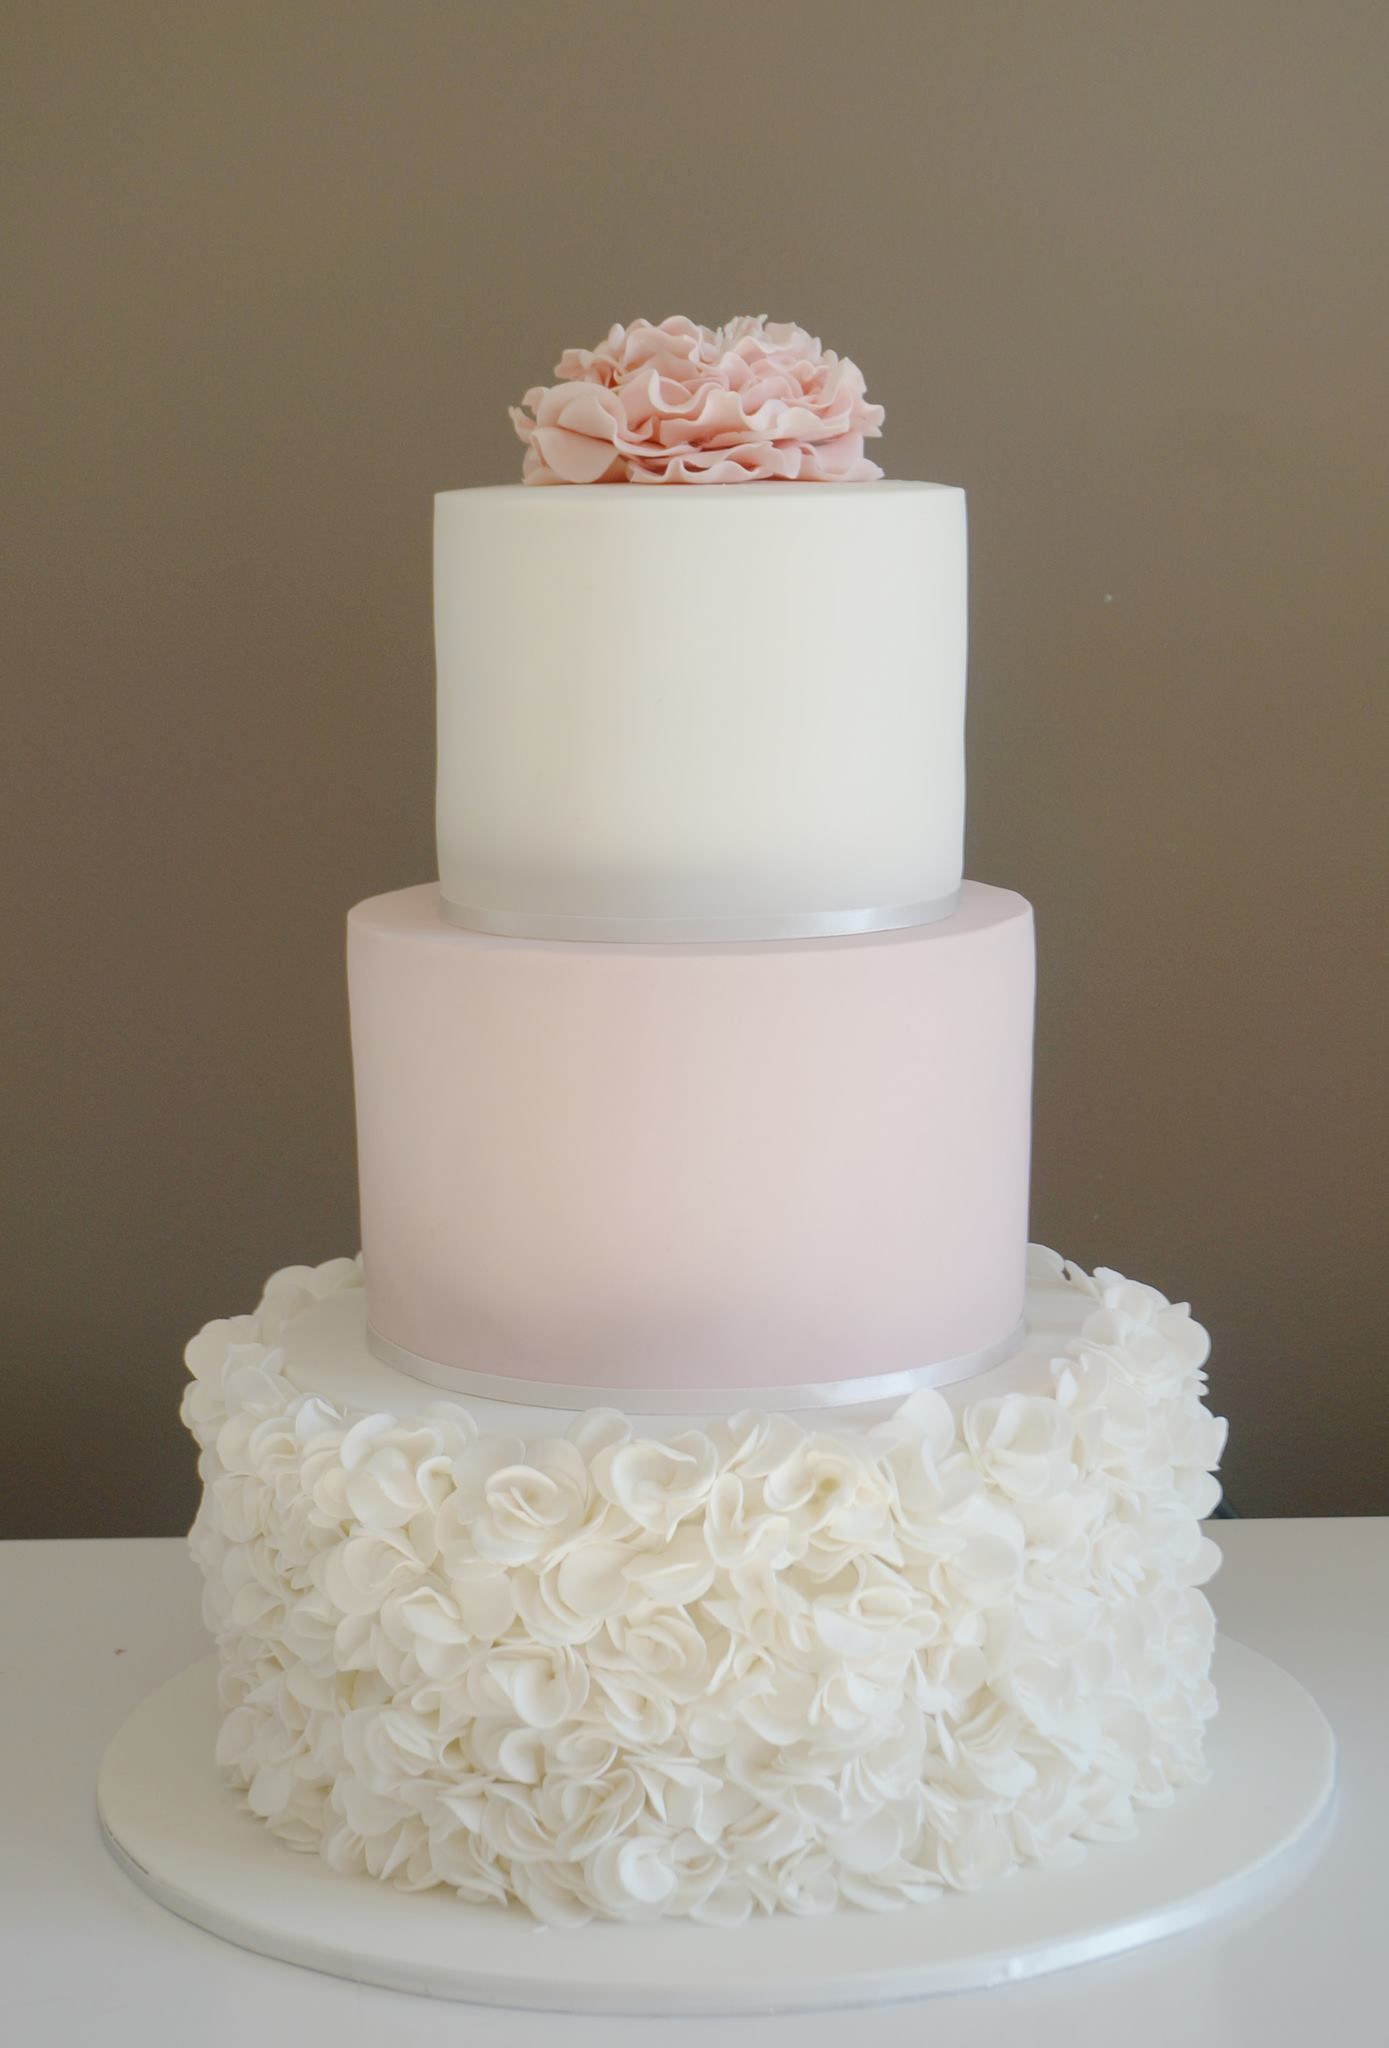 Beautiful 3 Layer Pink Flower Wedding Cake Cherry Blossom